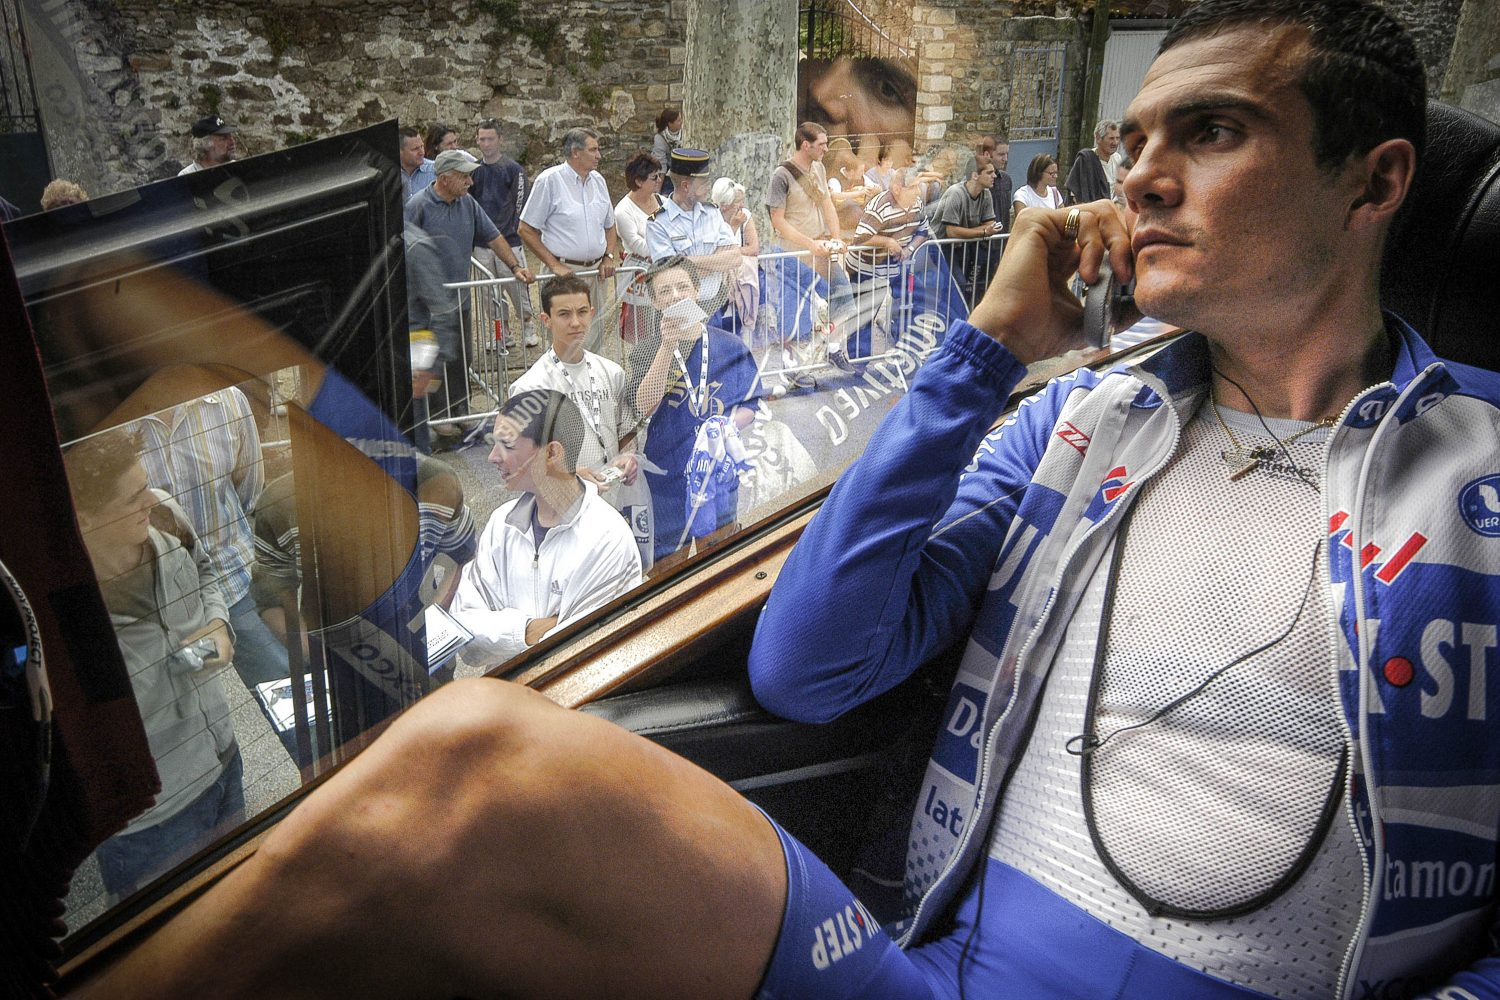 Virenque sitting in the bus speaking in his mobile phone and look at the crowd